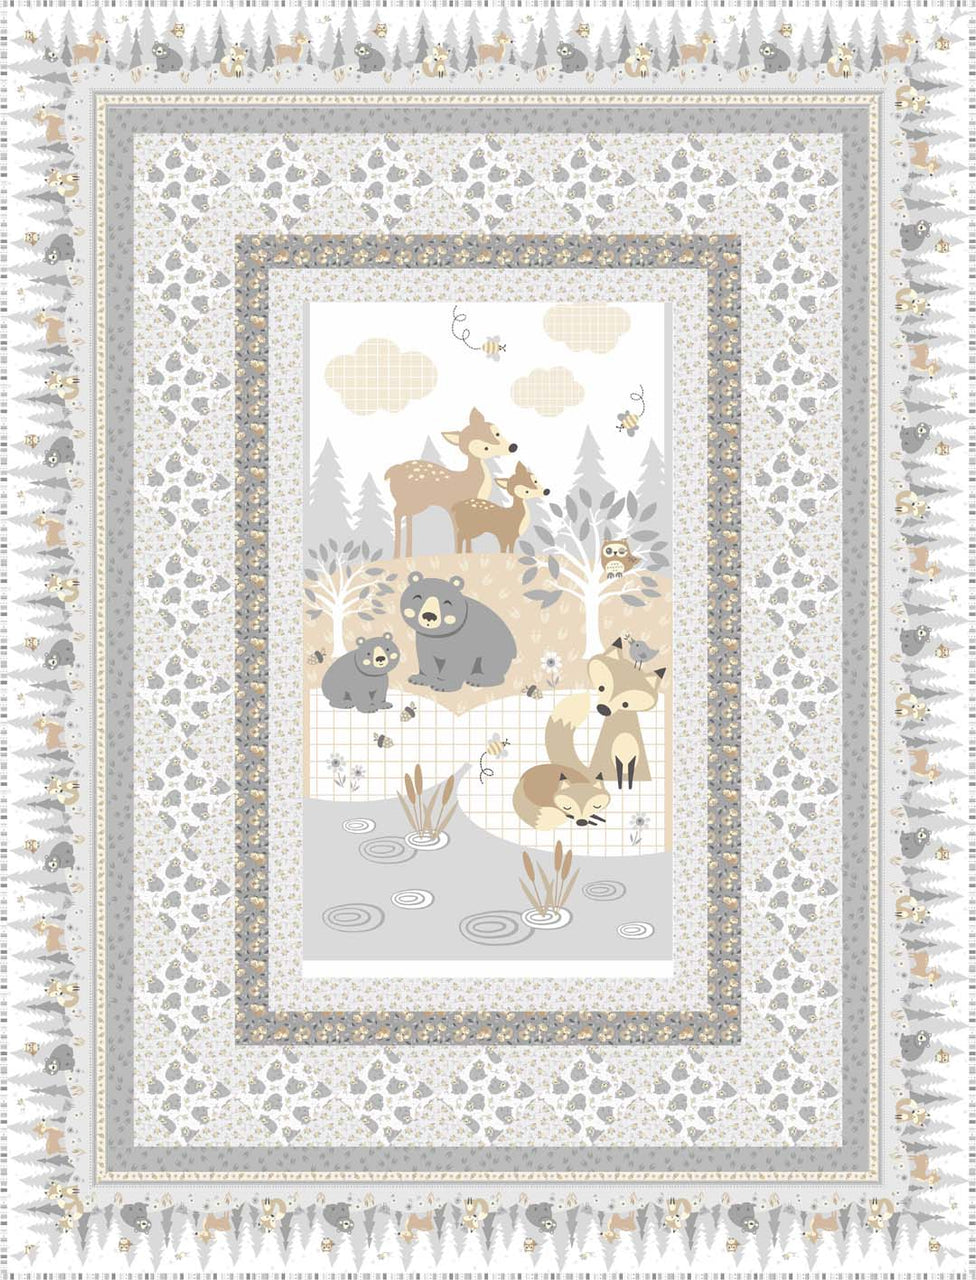 Little Critters<br>Projects by Stacey Day<br>Available Oct/Nov 2020.